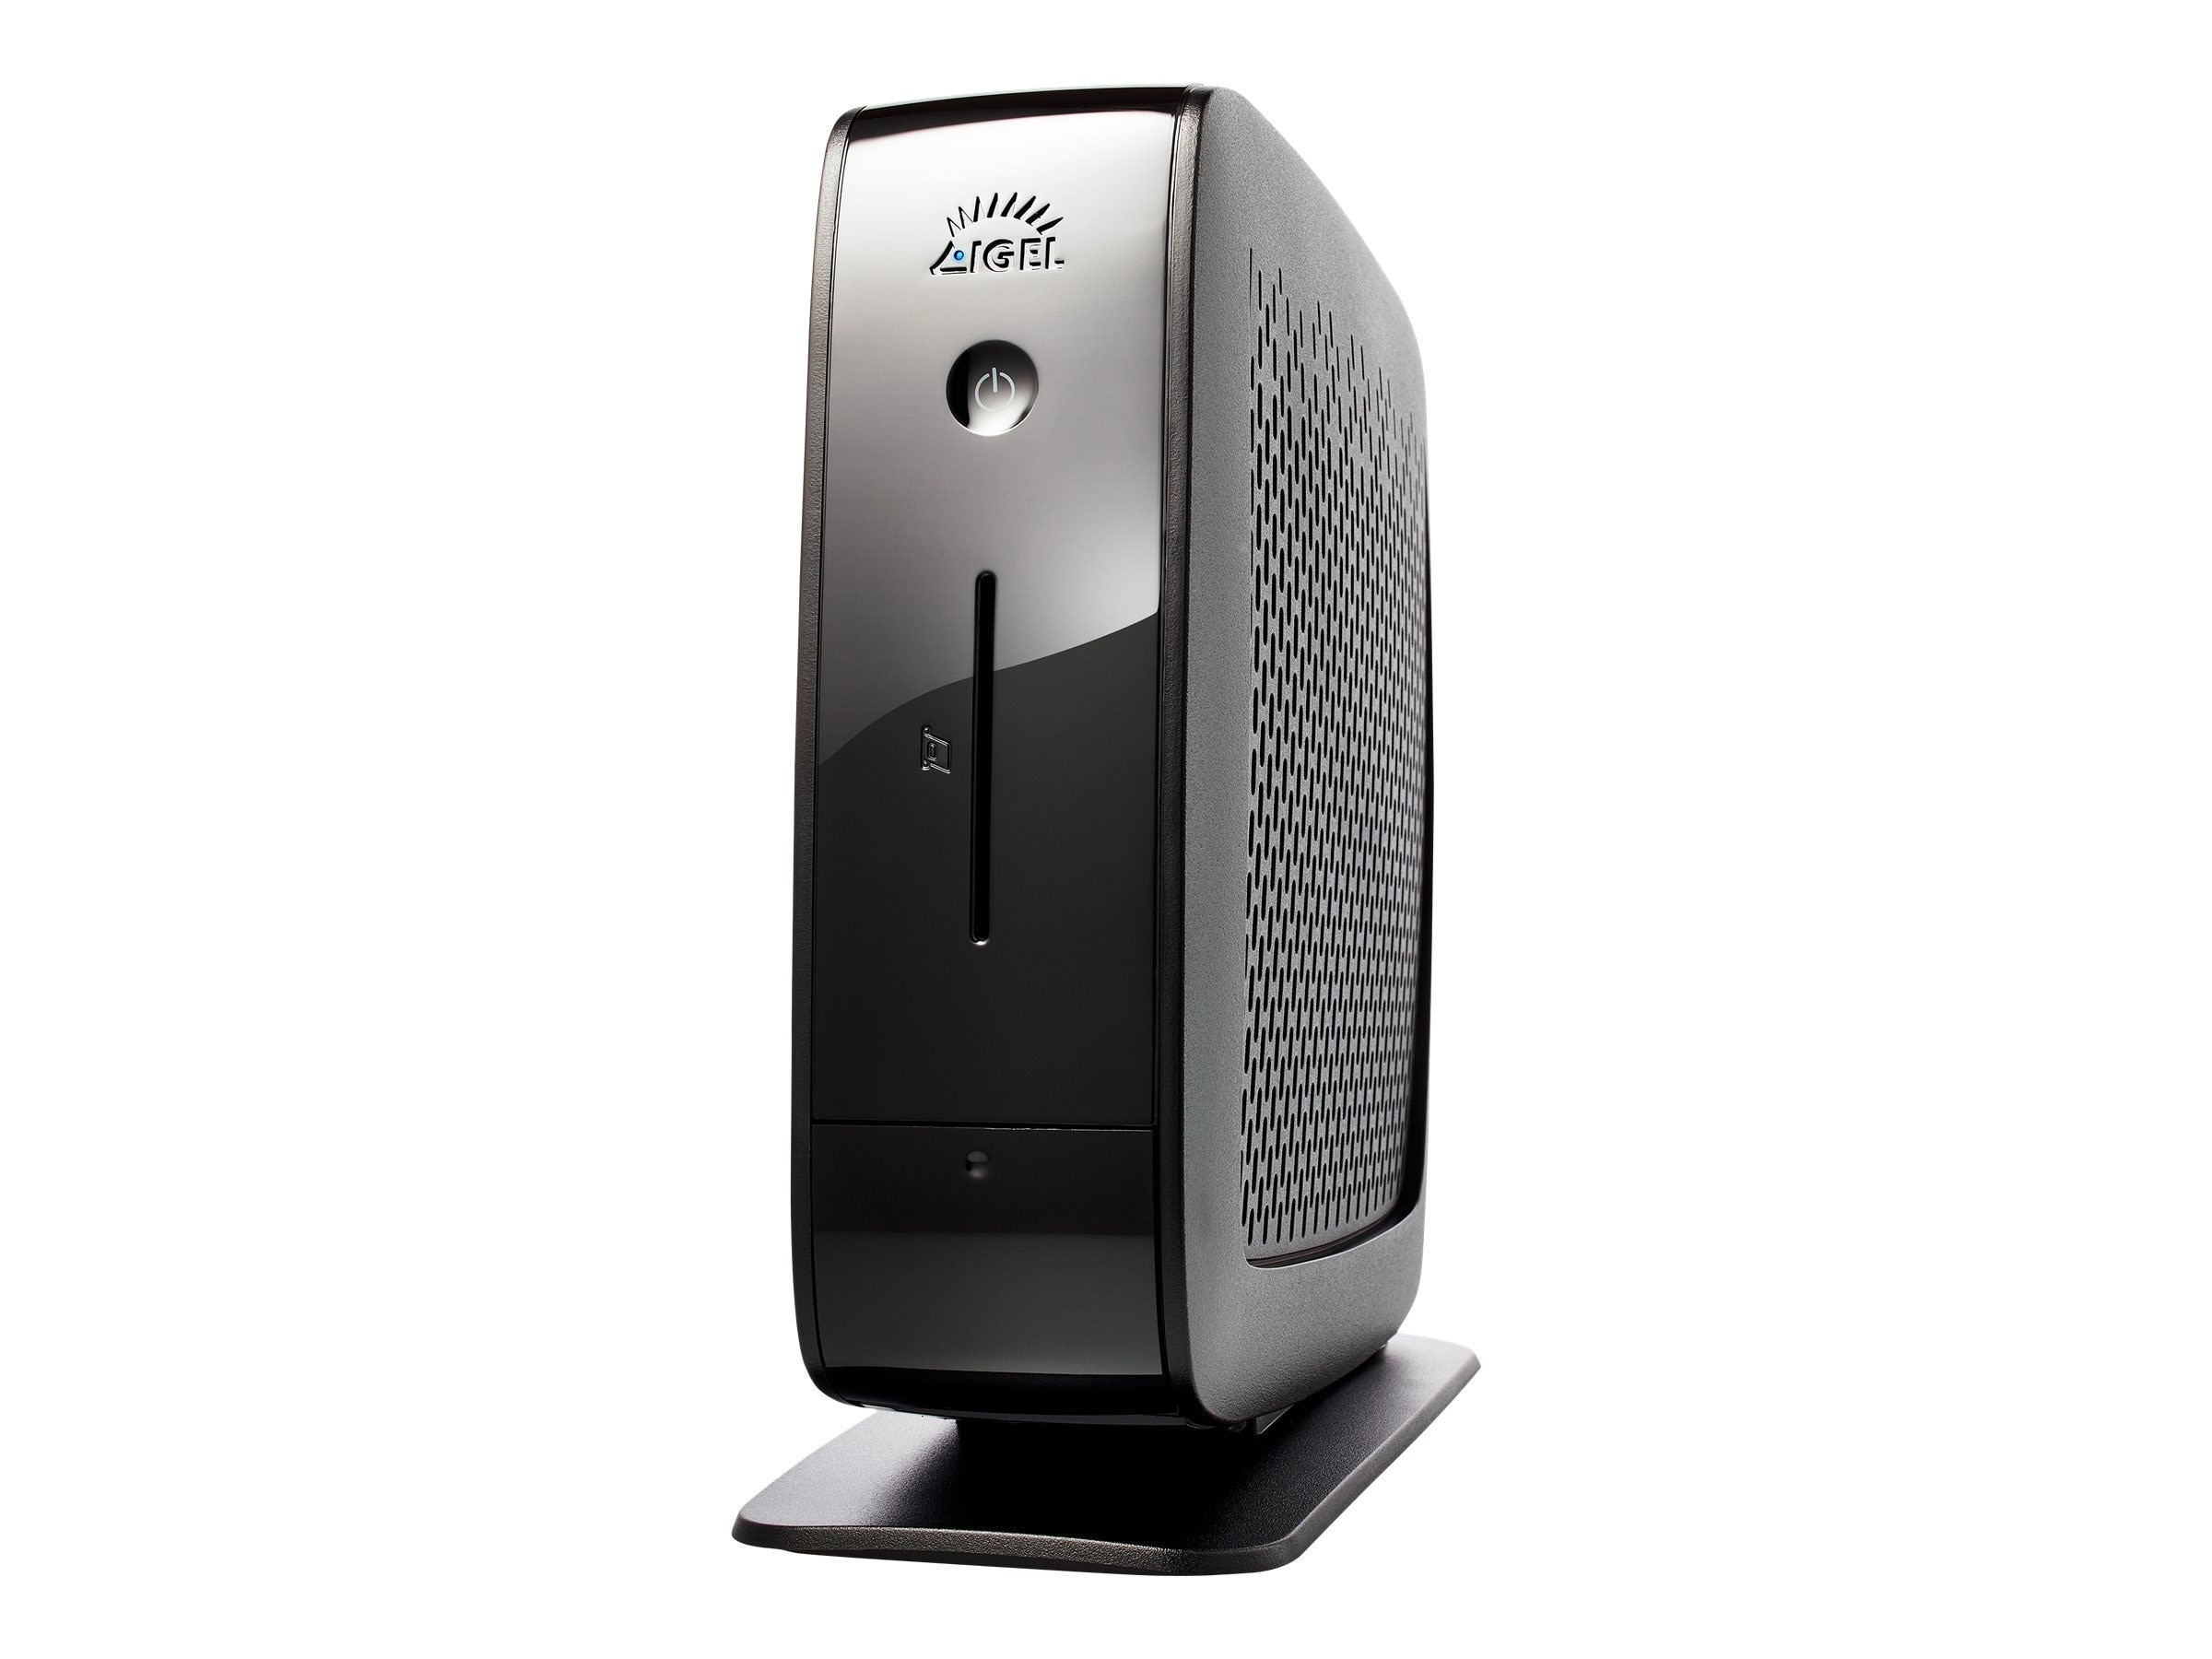 IGEL UD5 Universal Desktop Thin Client Celeron DC J1800 2.4GHz 2GB RAM 4GB SSD GbE WES7, 62-UD5-W750-34BL, 18368794, Thin Client Hardware